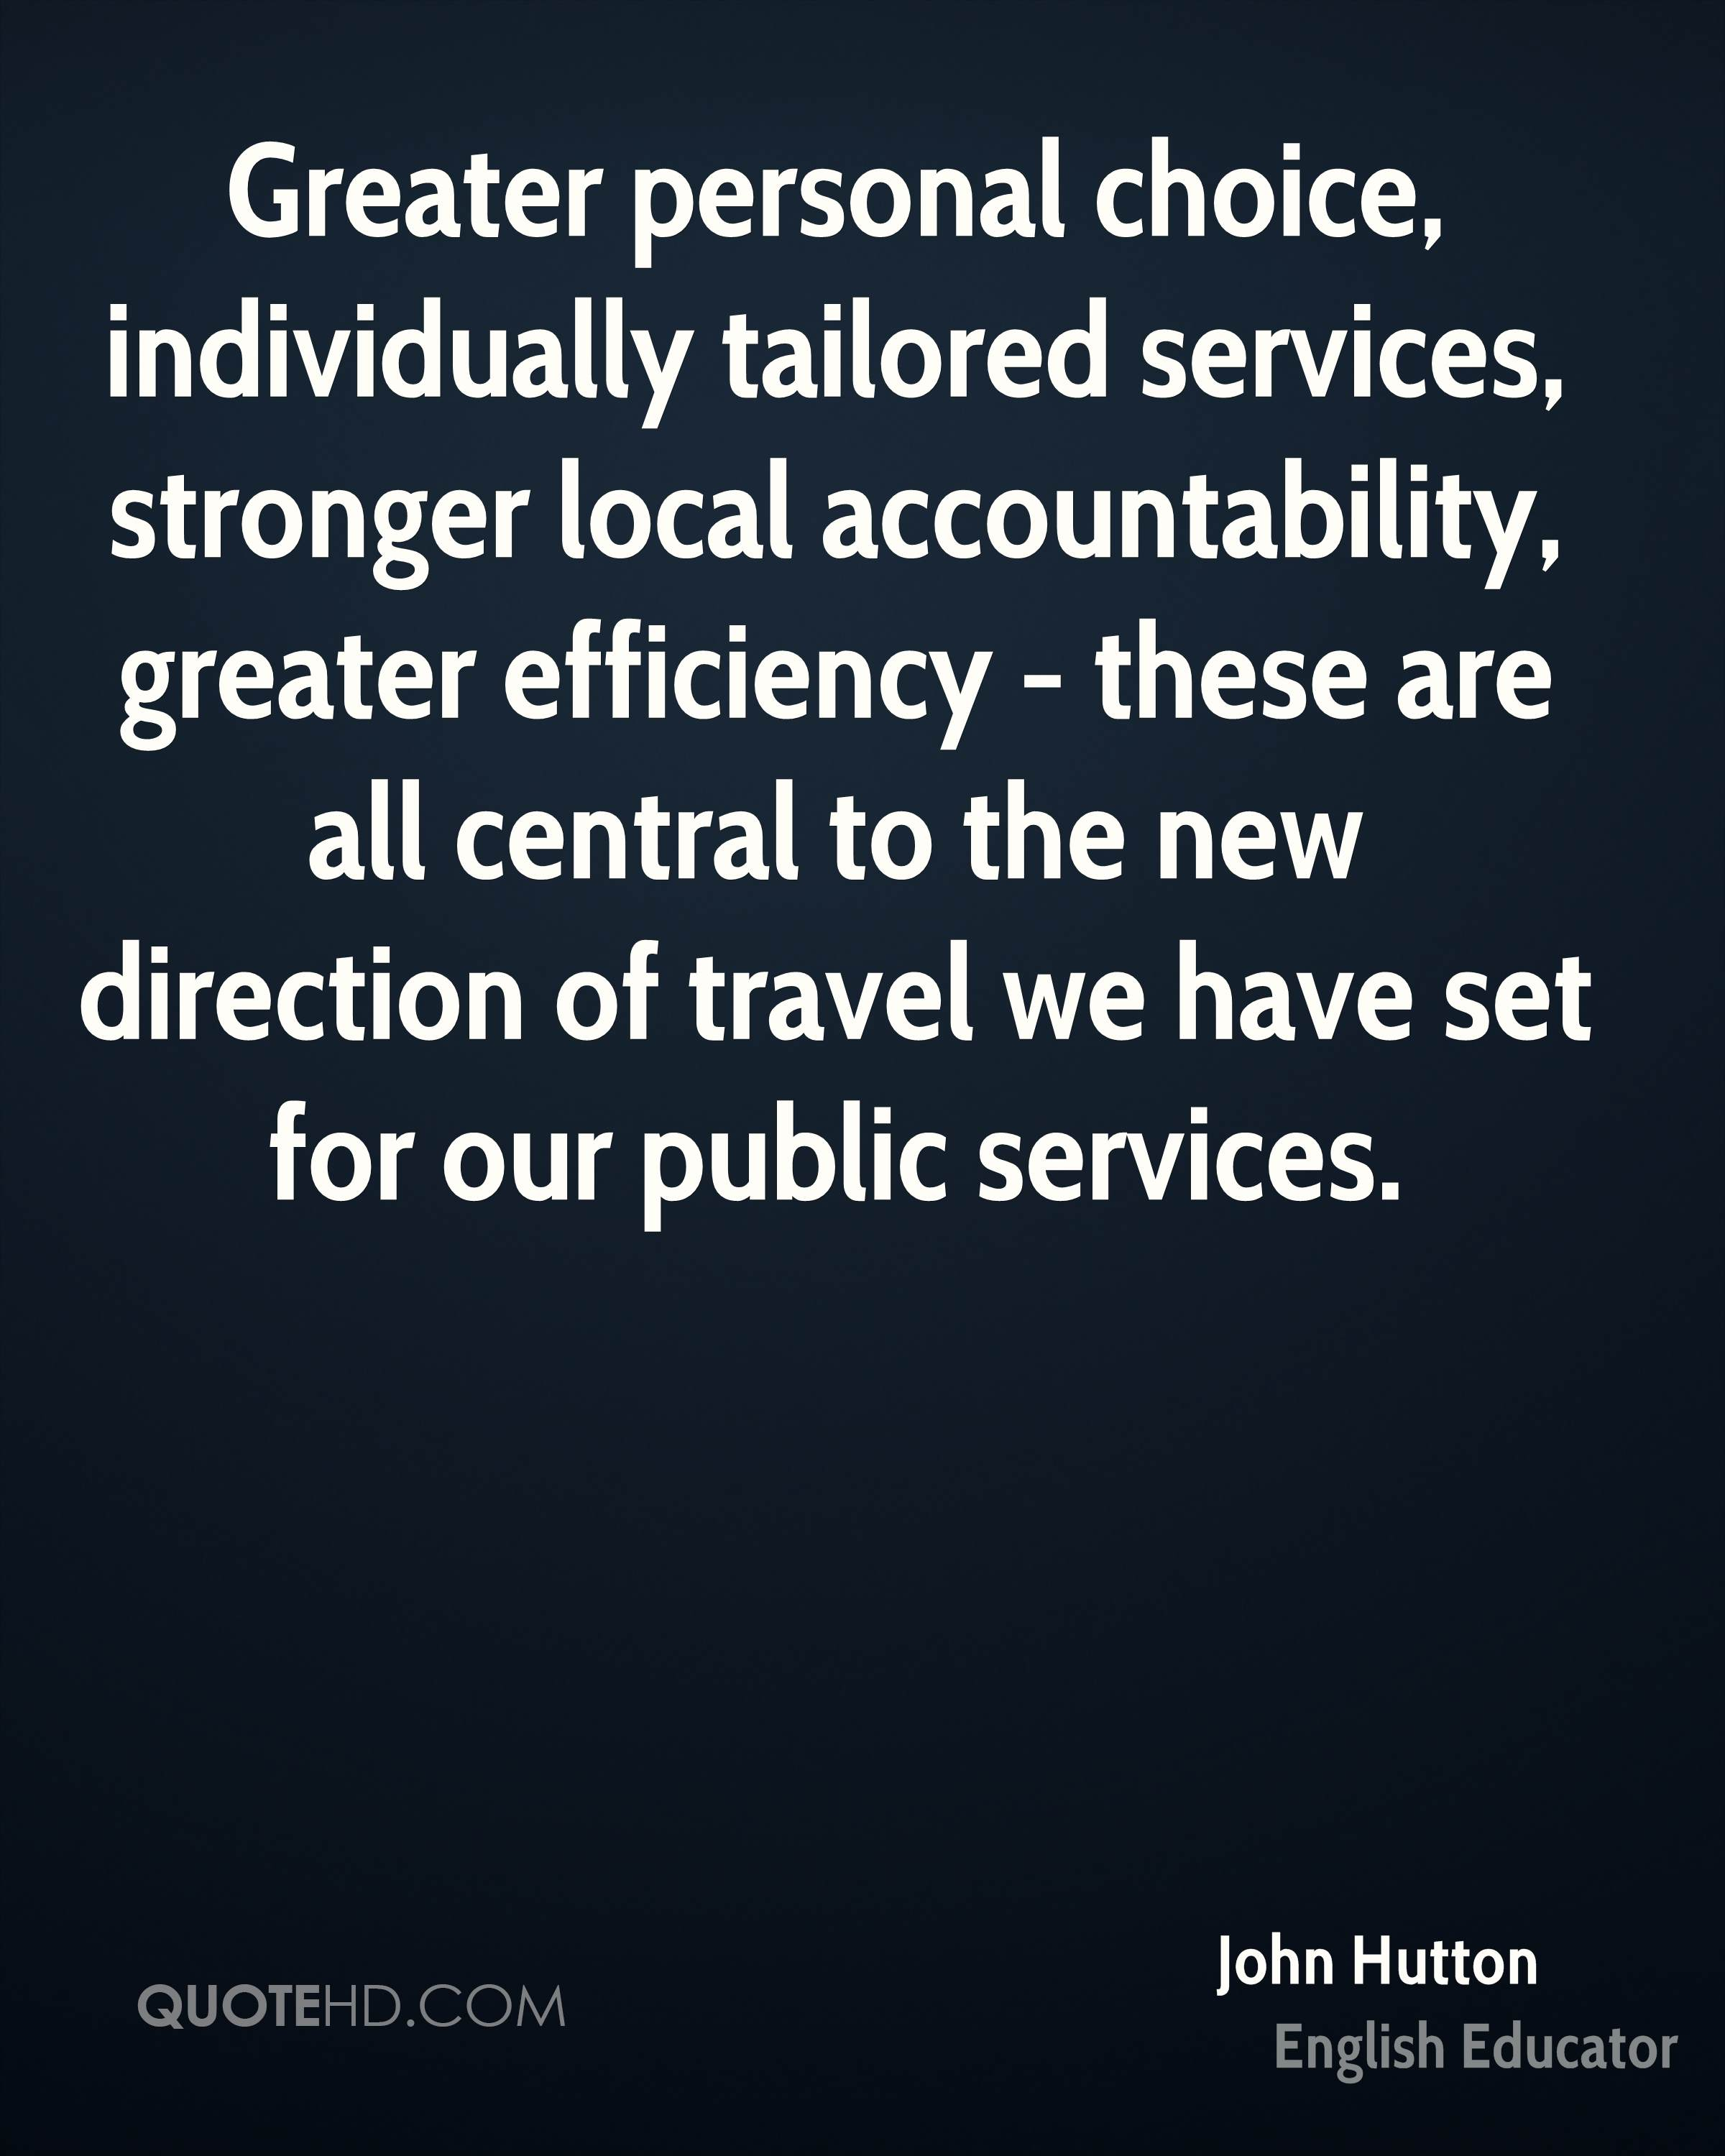 Greater personal choice, individually tailored services, stronger local accountability, greater efficiency - these are all central to the new direction of travel we have set for our public services.